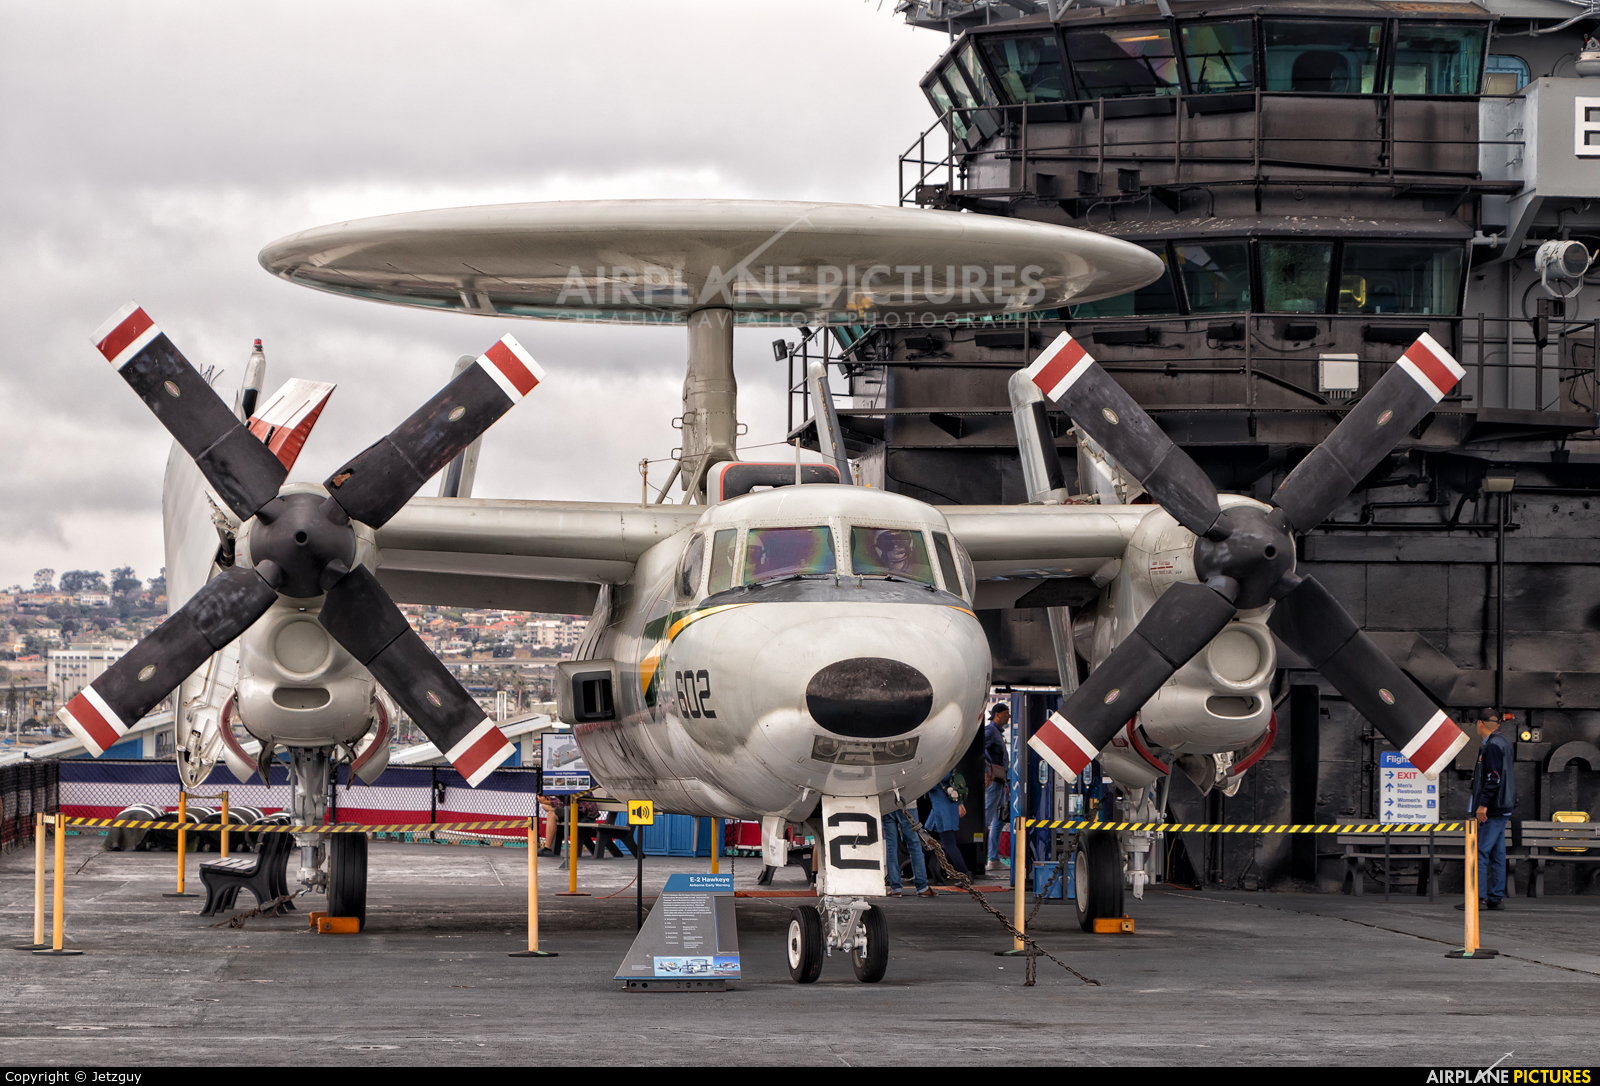 USA - Navy 161227 aircraft at San Diego - USS Midway Museum